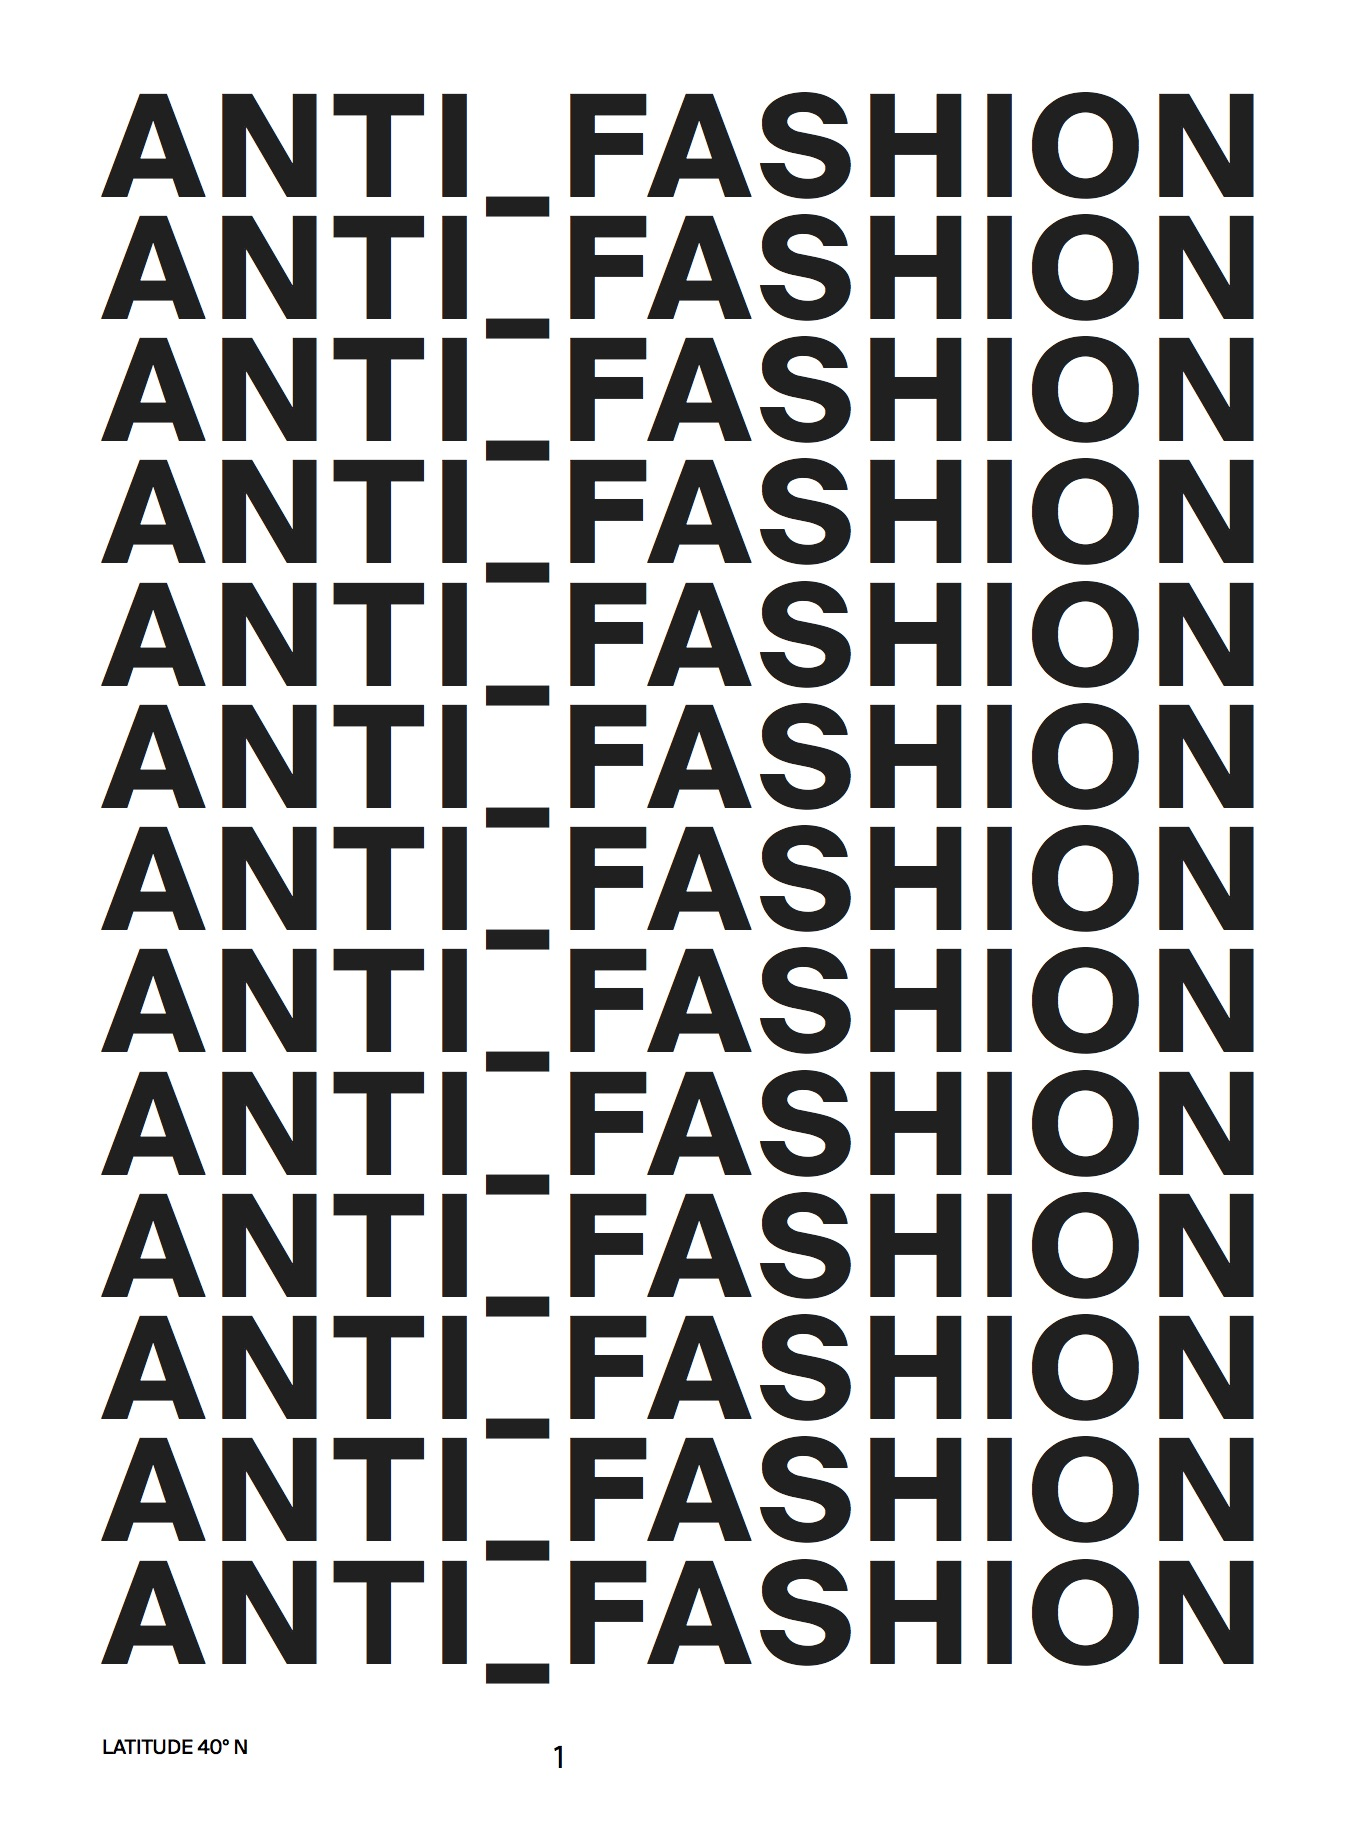 Anti-Fashion 2017